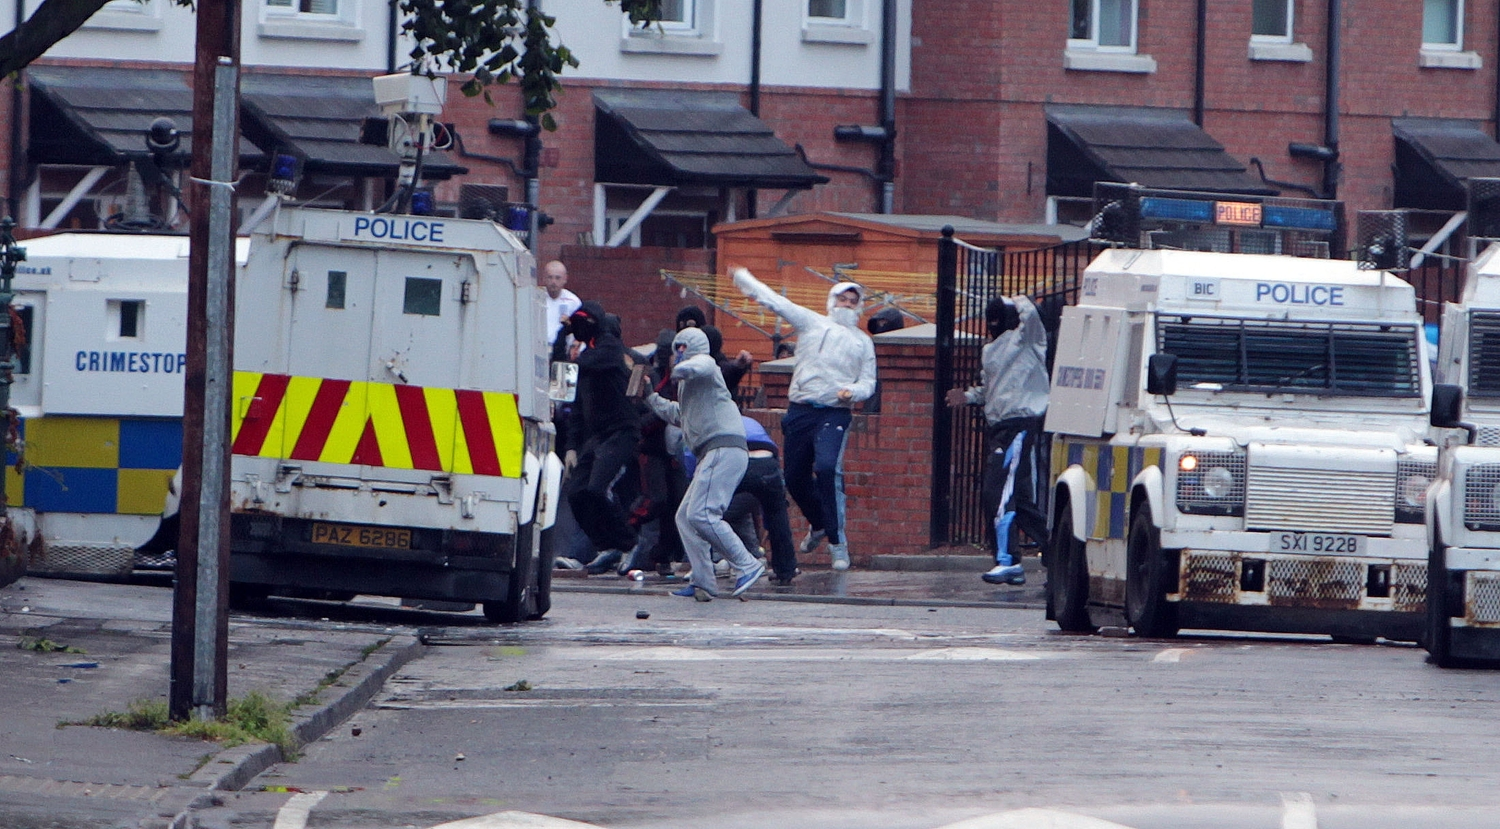 Violence flared at the Short Strand for two nights running